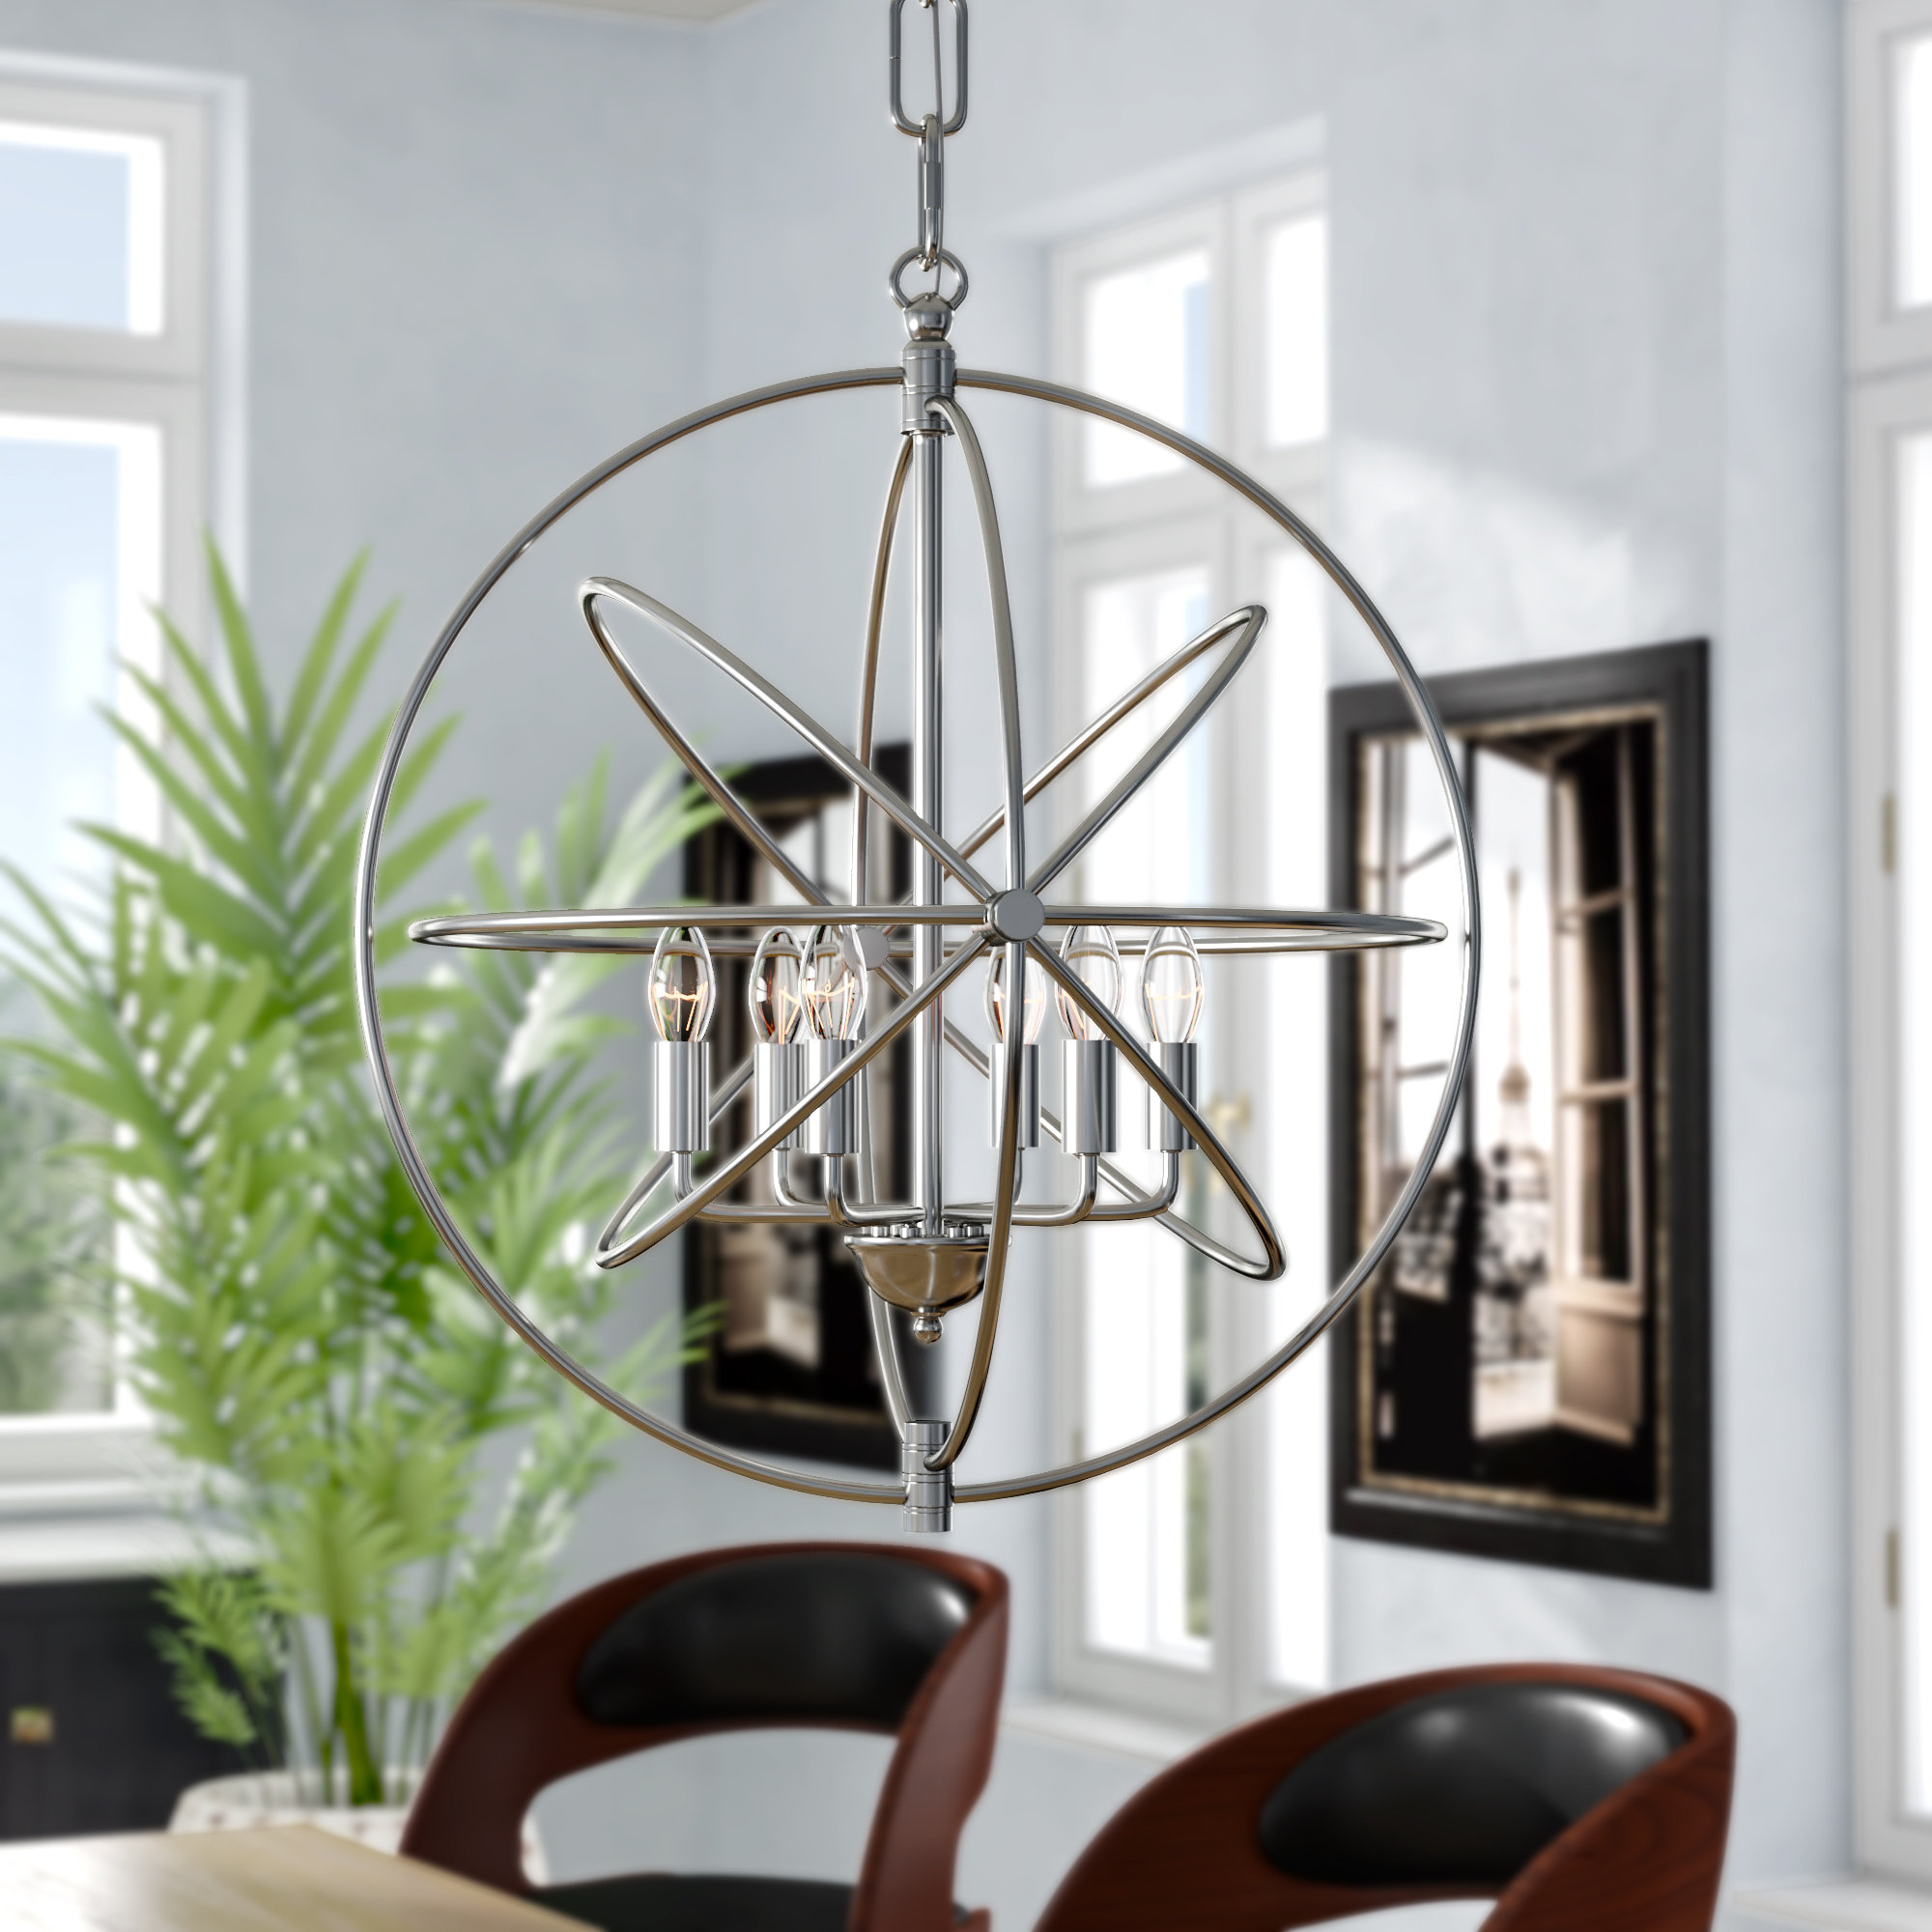 Hamby 6 Light Globe Chandelier With Recent Gregoire 6 Light Globe Chandeliers (View 17 of 25)